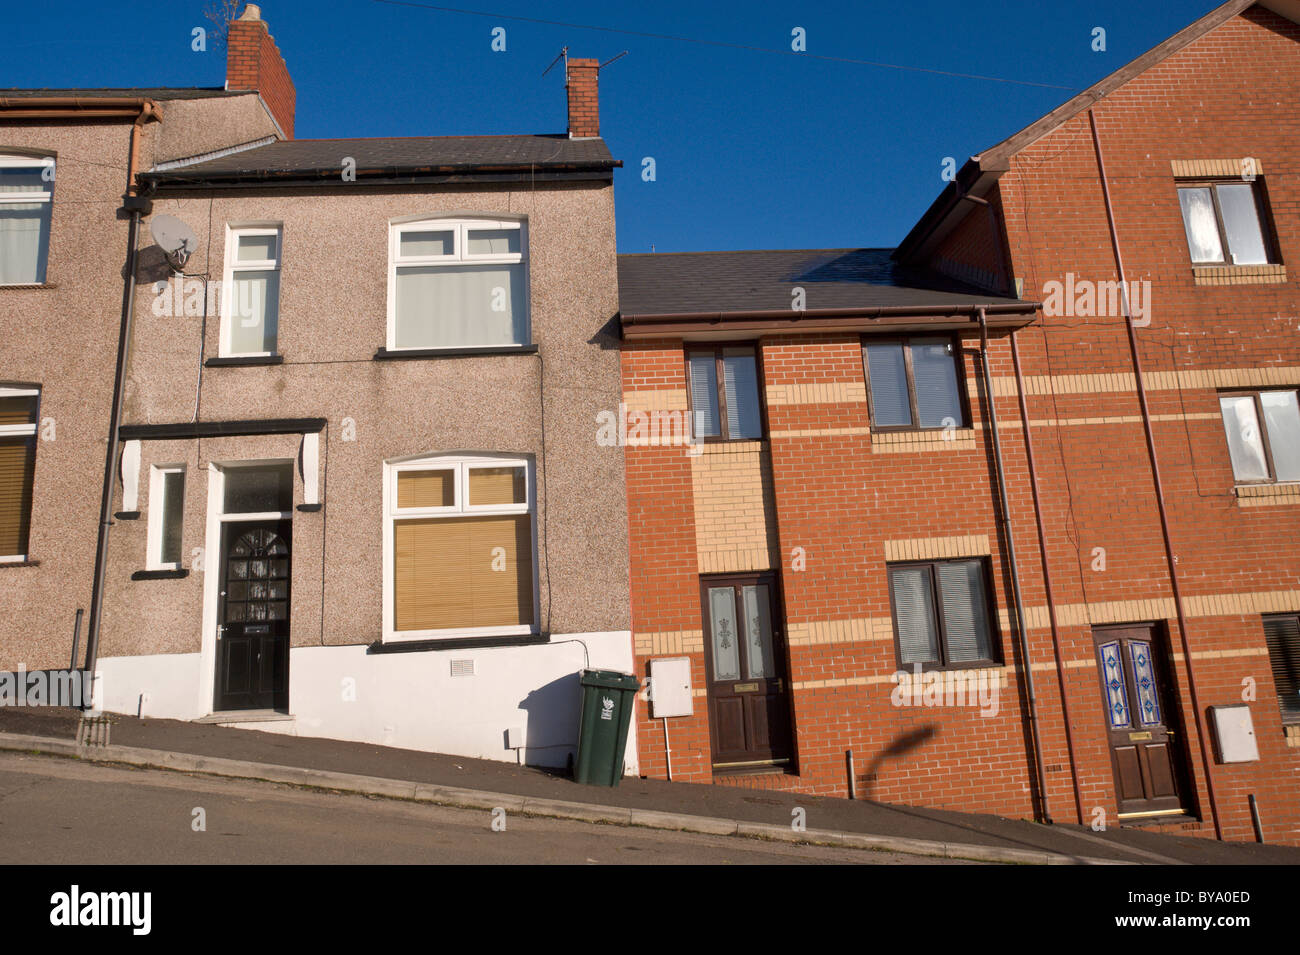 Old and new built terraced houses on hill in Newport South Wales UK Stock Photo